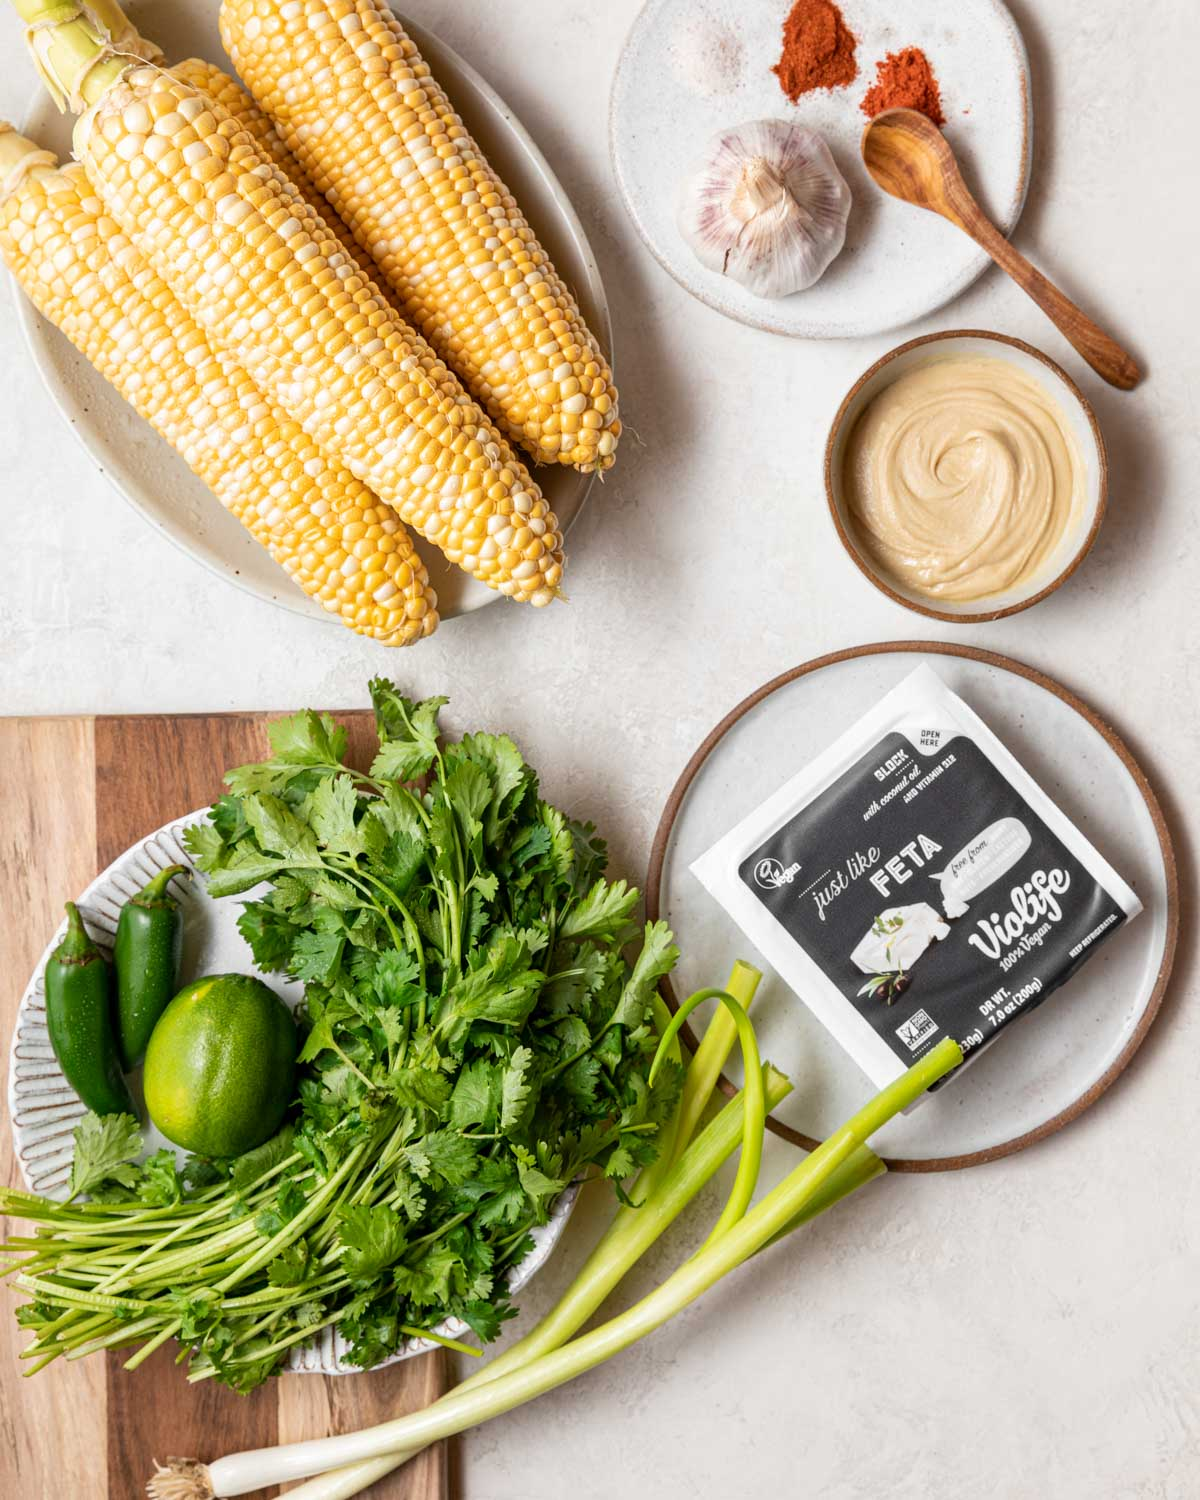 All of the ingredients for the corn salad, including corn on the cob, cashew butter, cilantro, and jalapeño peppers, sit on the counter.